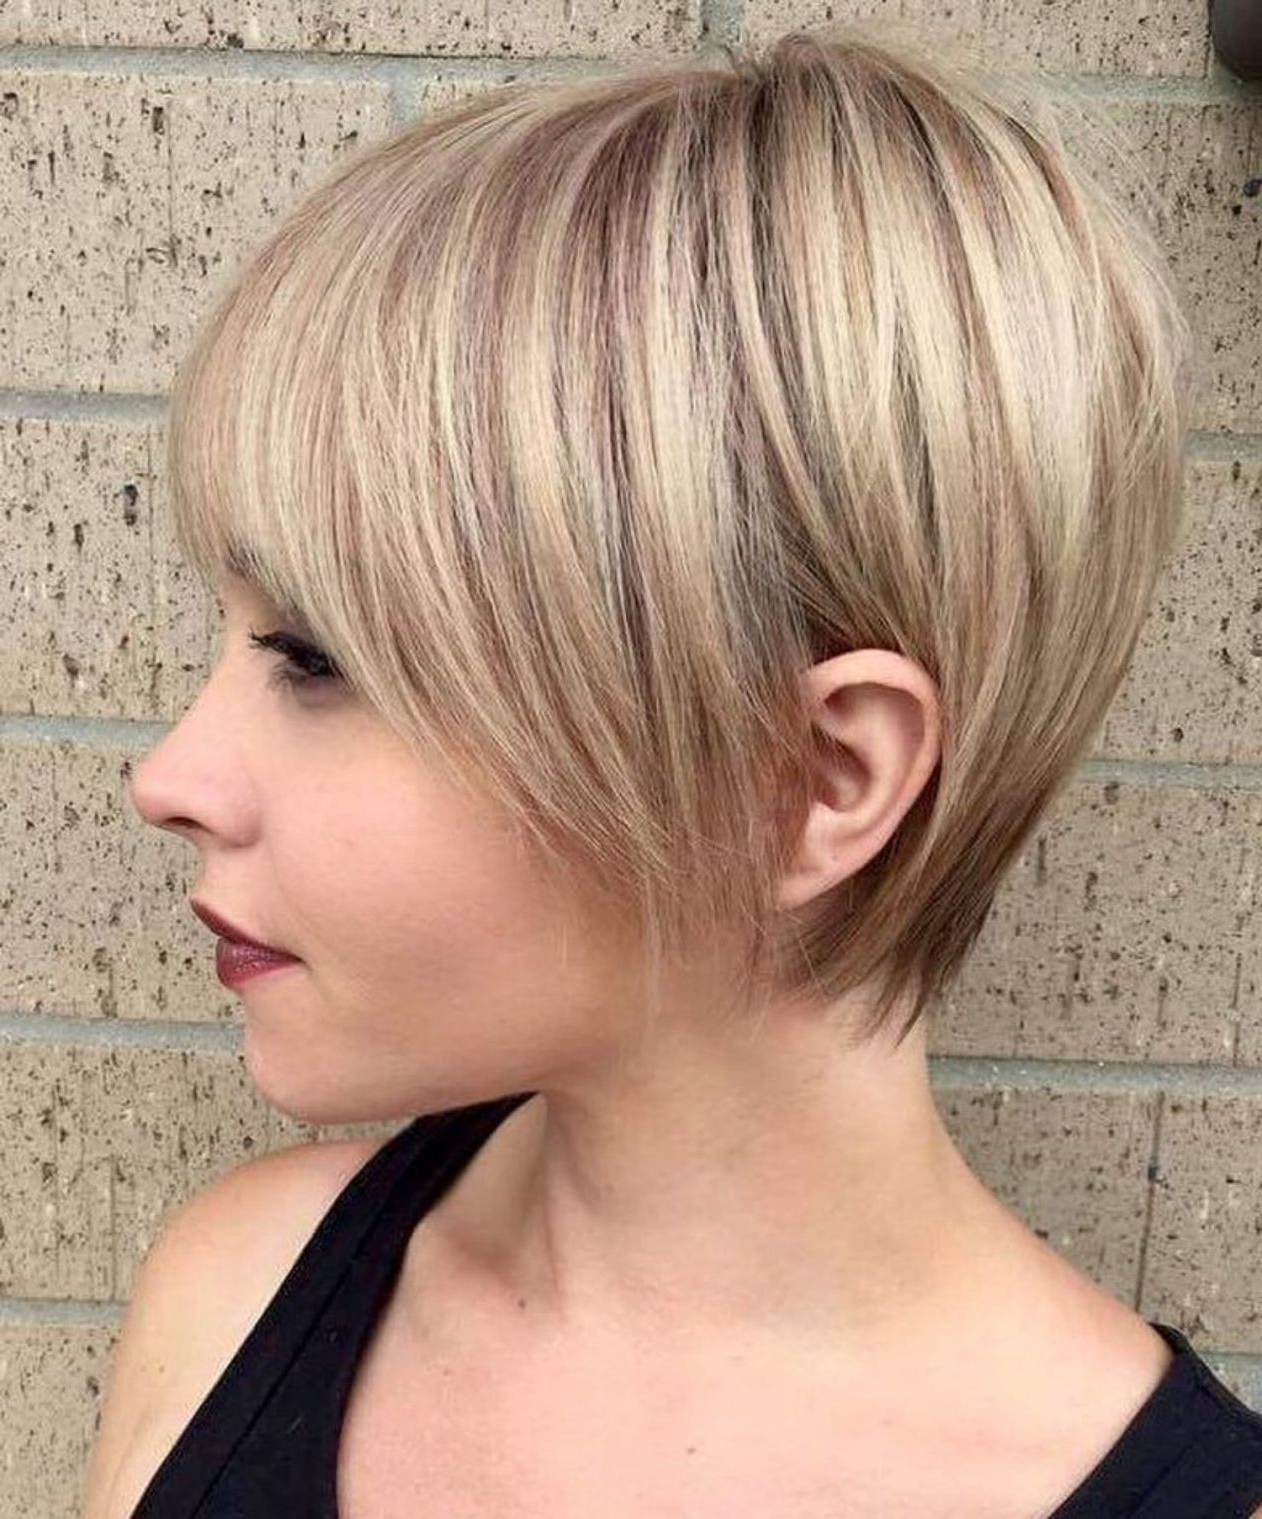 50 Super Cute Looks With Short Hairstyles For Round Faces Regarding Cropped Hairstyles For Round Faces (View 14 of 20)